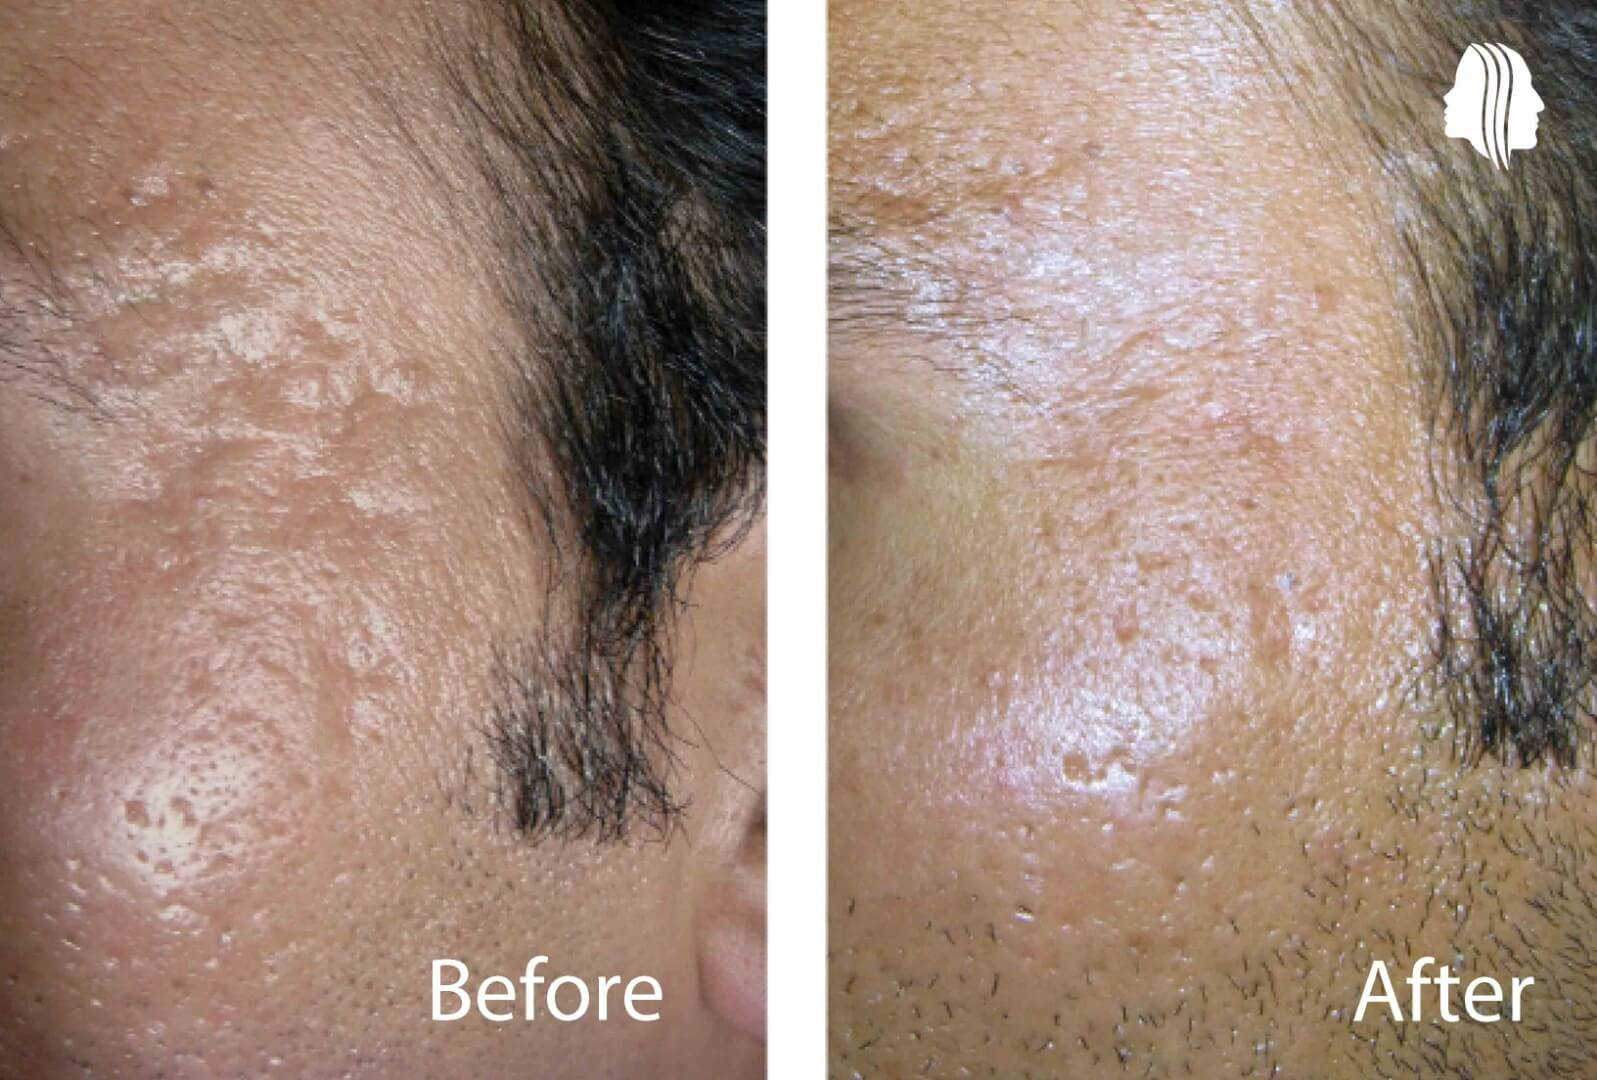 z Acne treatment in Delhicne1PrePost